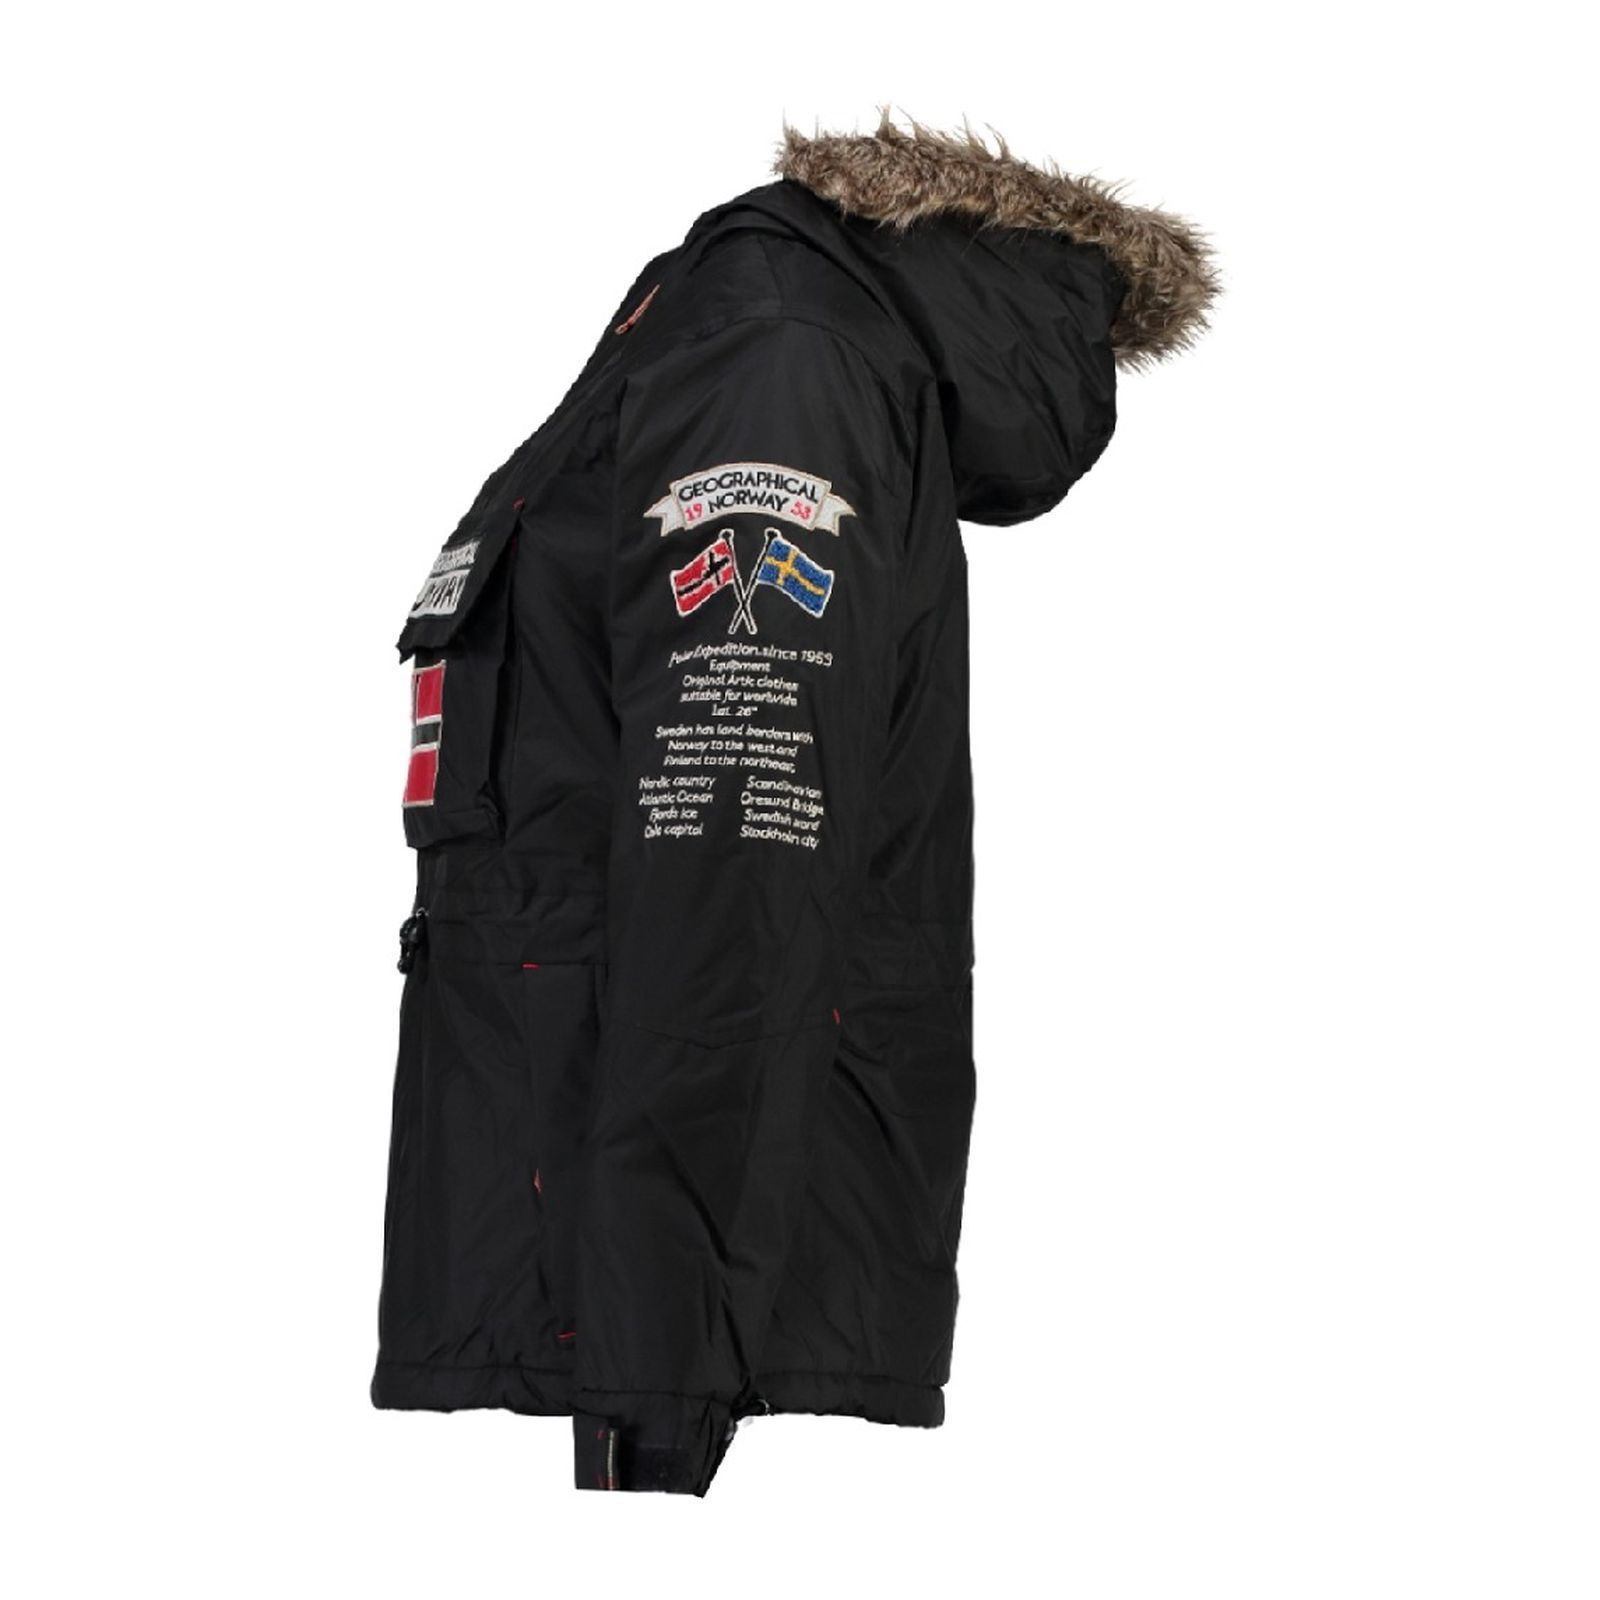 Norway Boomera Parka Geographical Brandalley Noir FPqFUcd